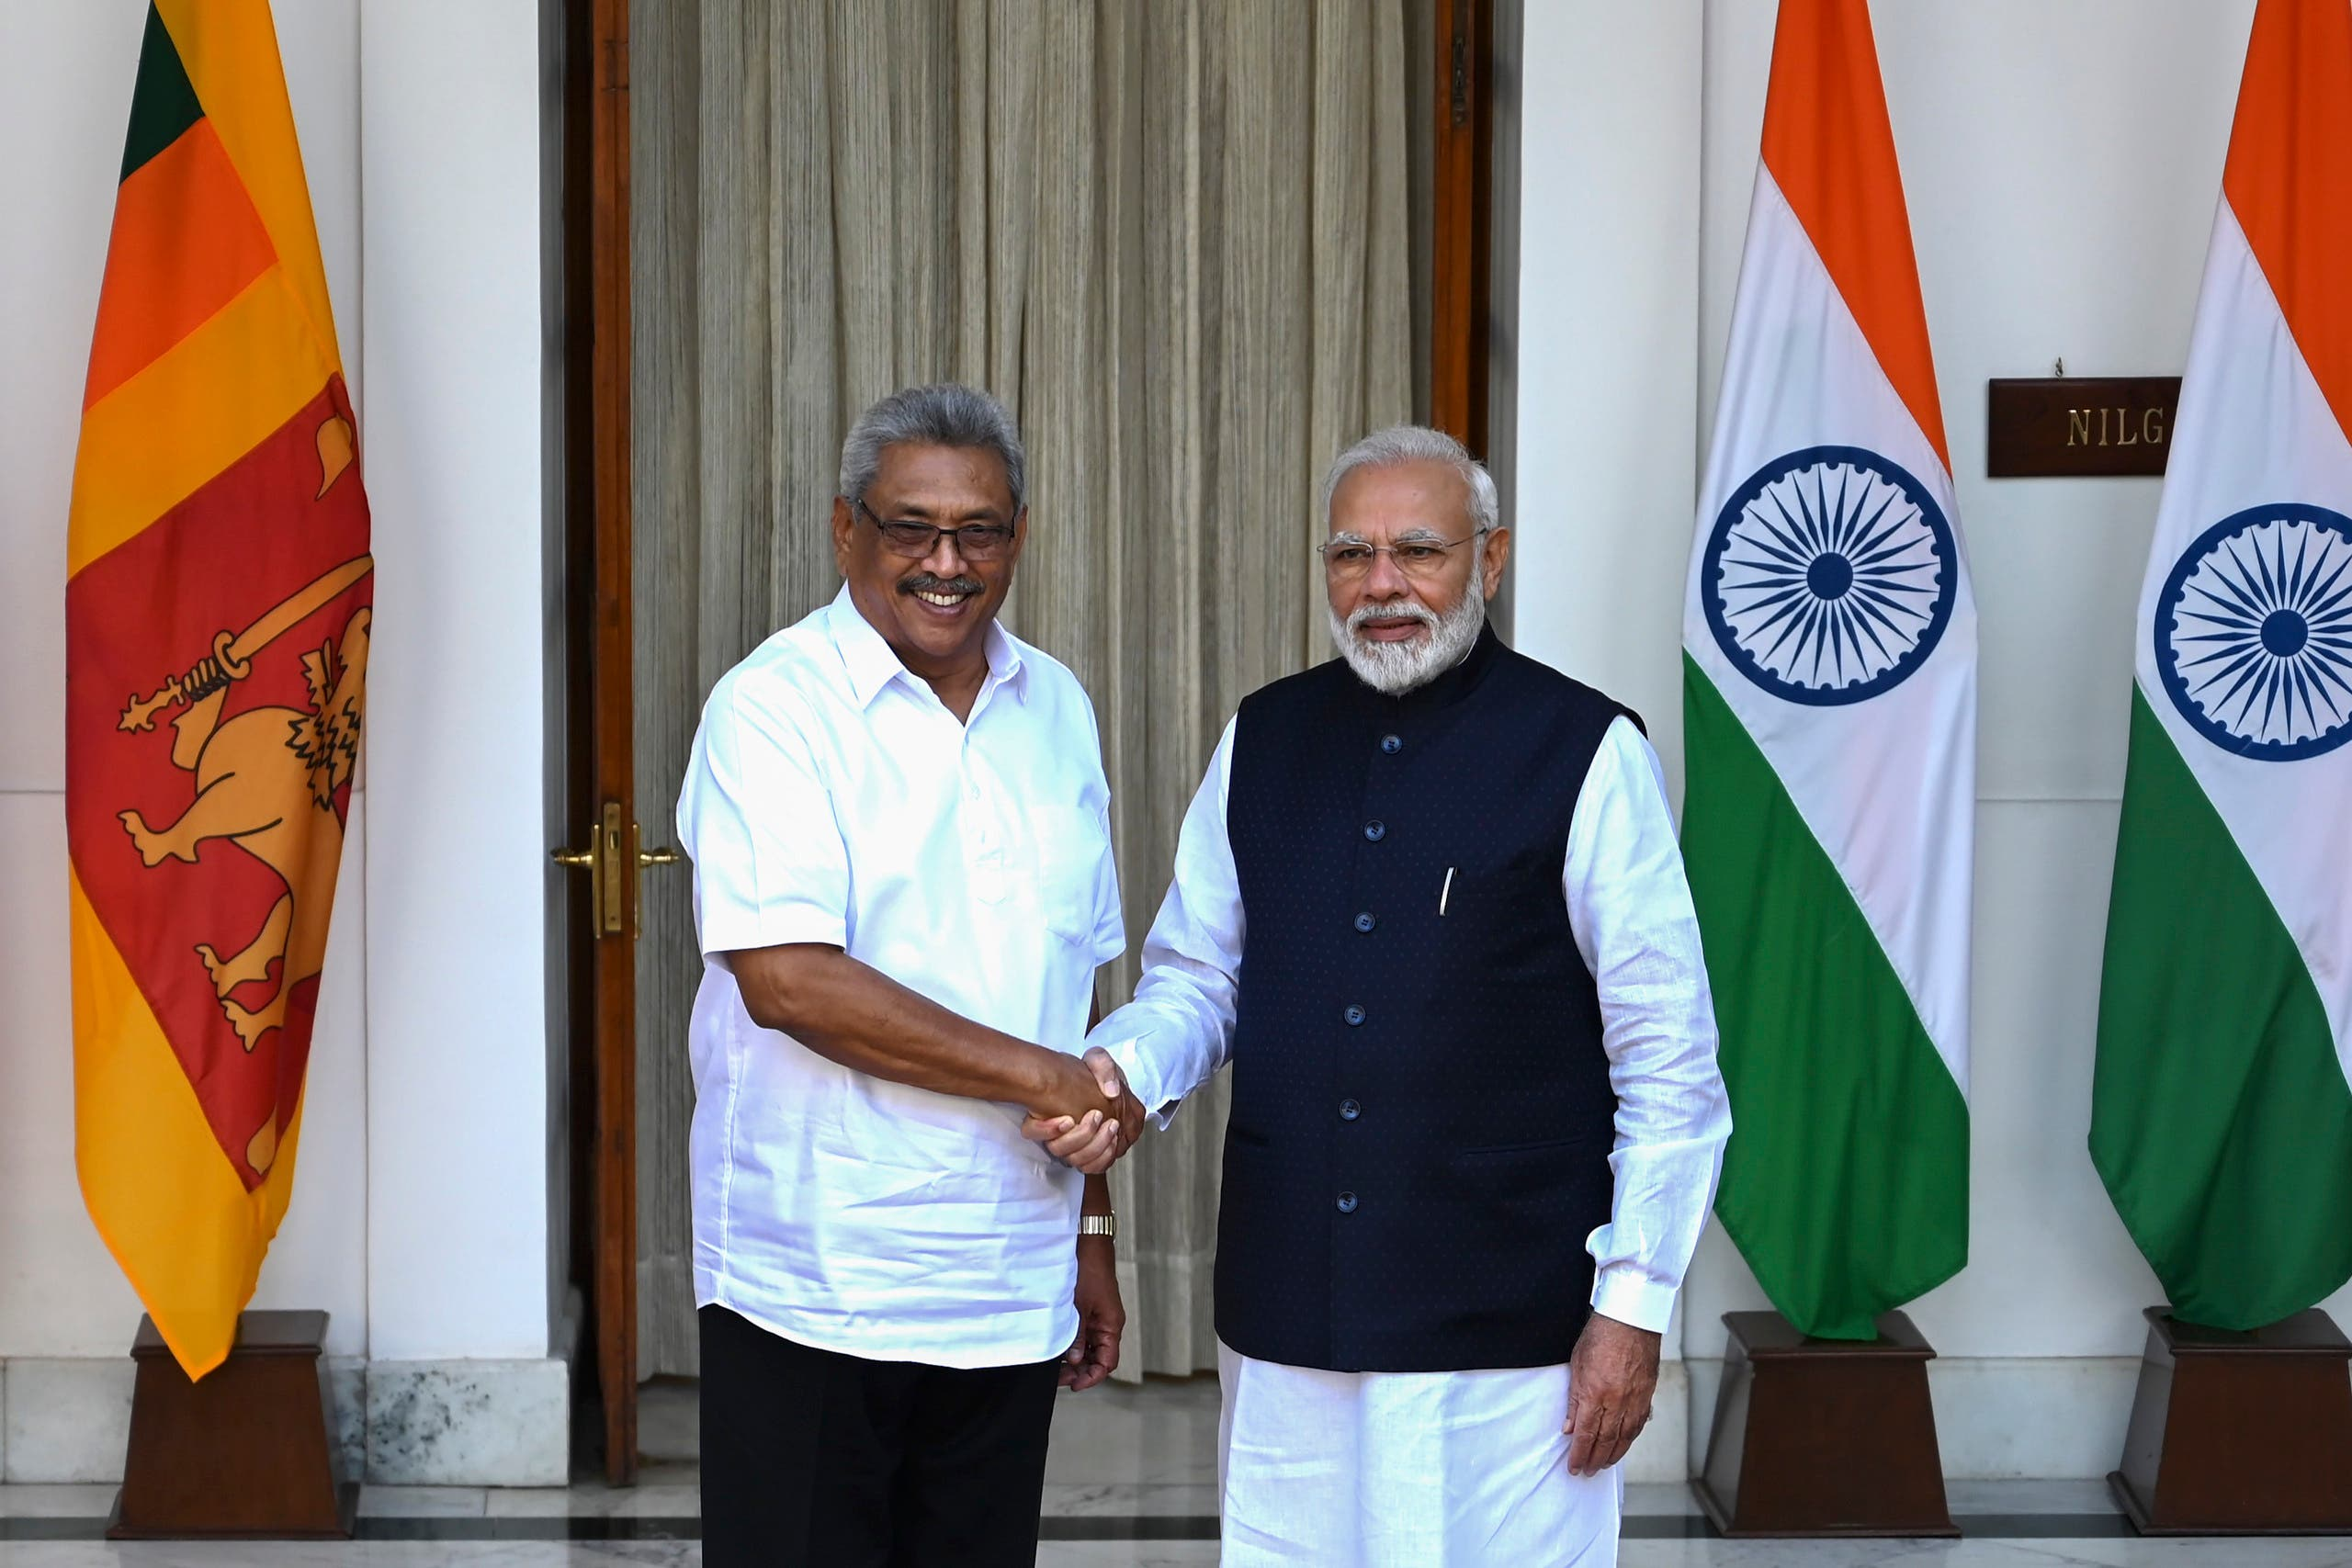 Sri Lanka's President Gotabaya Rajapaksa (L) shakes hands with India's Prime Minister Narendra Modi before a meeting in New Delhi on November 29, 2019. (File photo: AFP)